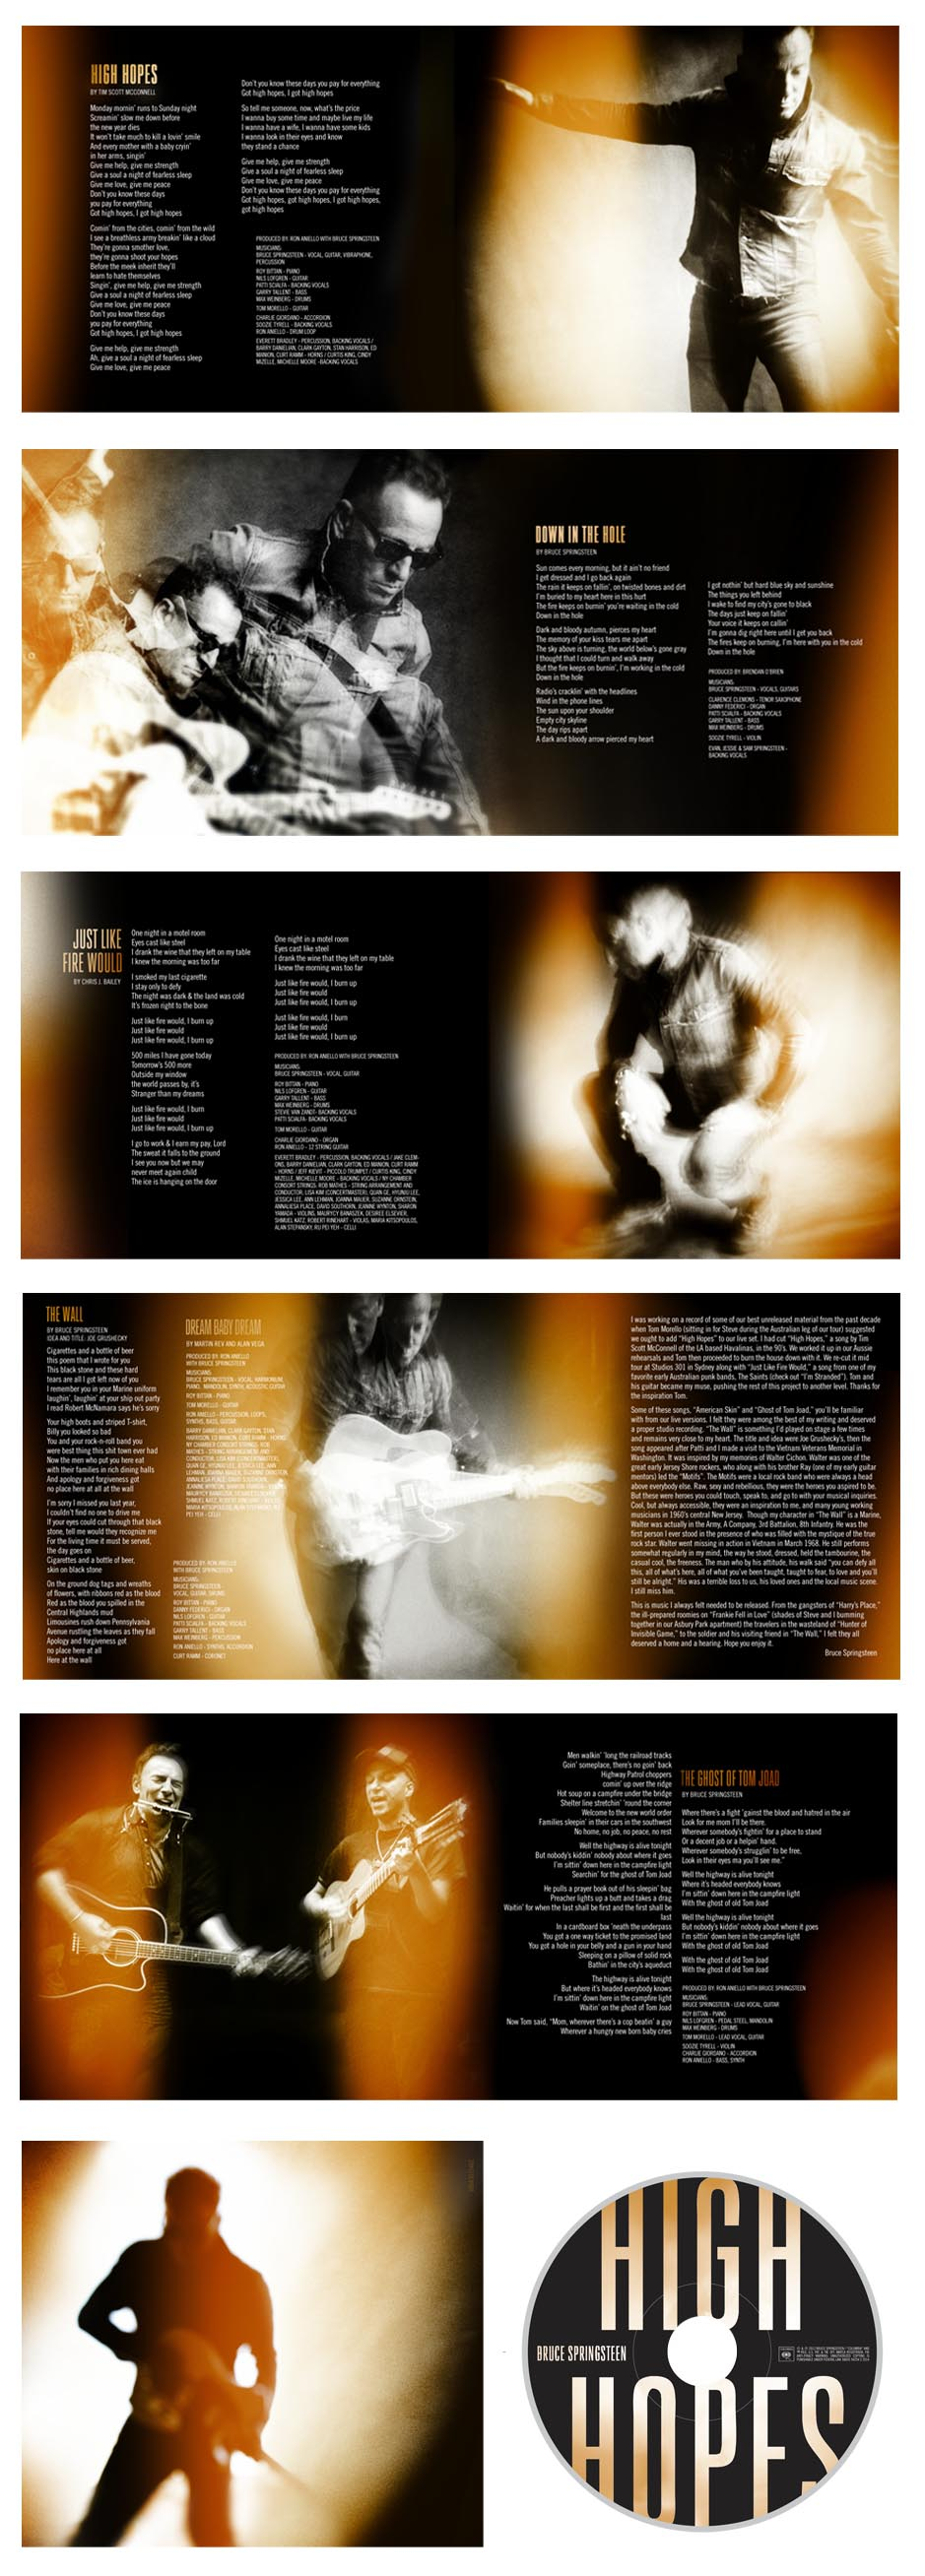 High Hopes booklet and CD